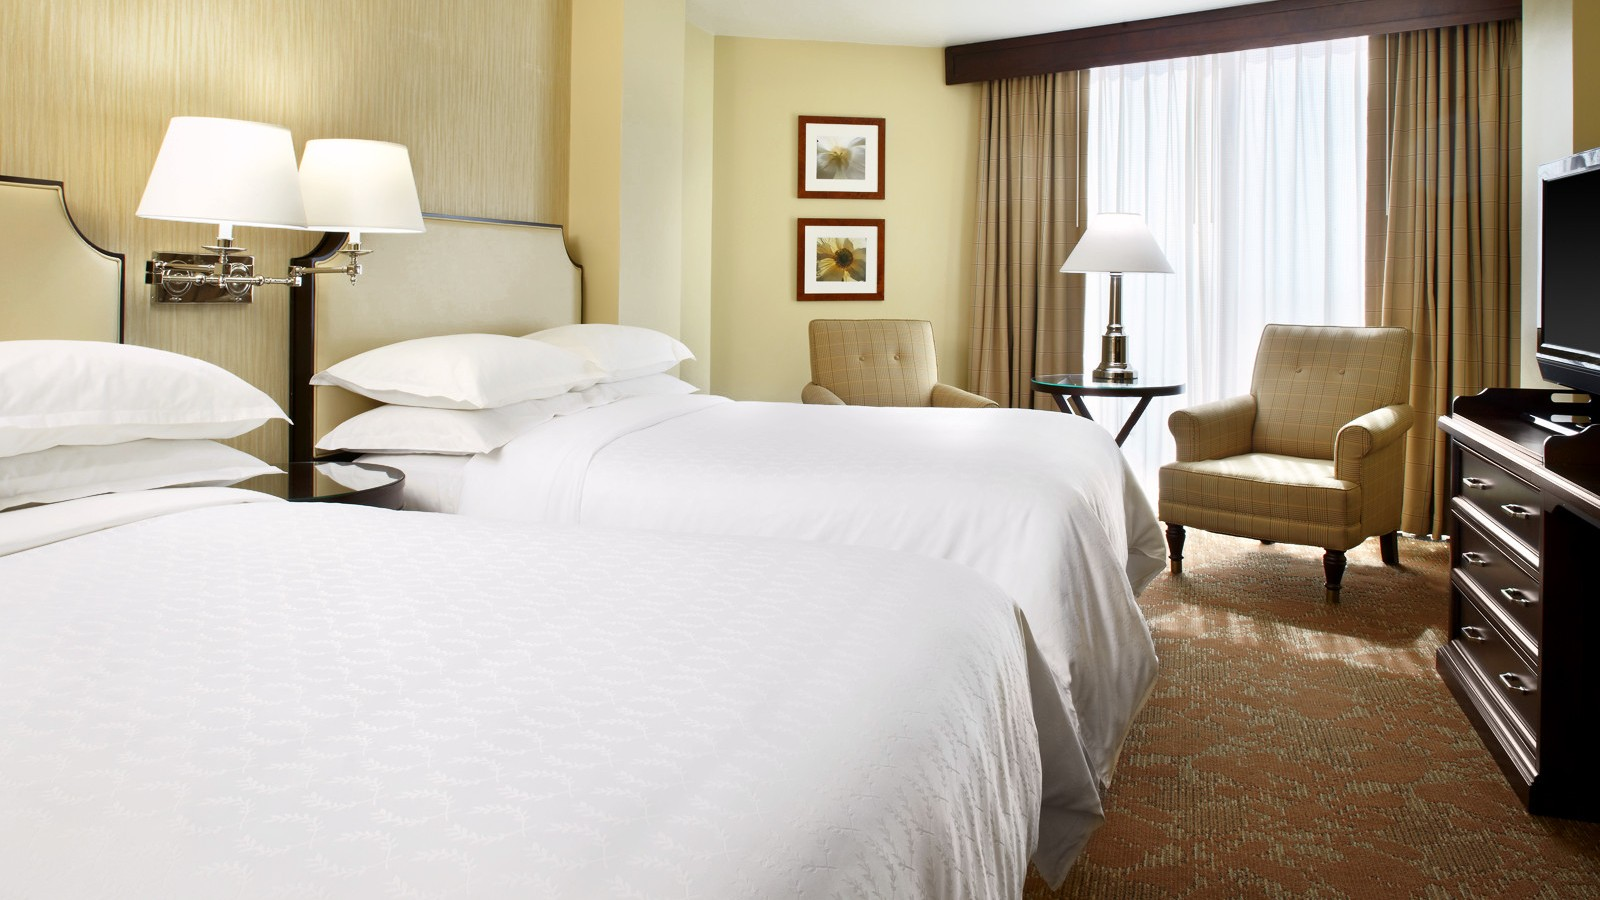 https://www.hotelsbyday.com/_data/default-hotel_image/0/2650/sheratonhoustonbrookhollowhotelguestroomwithdoublebeds.jpg